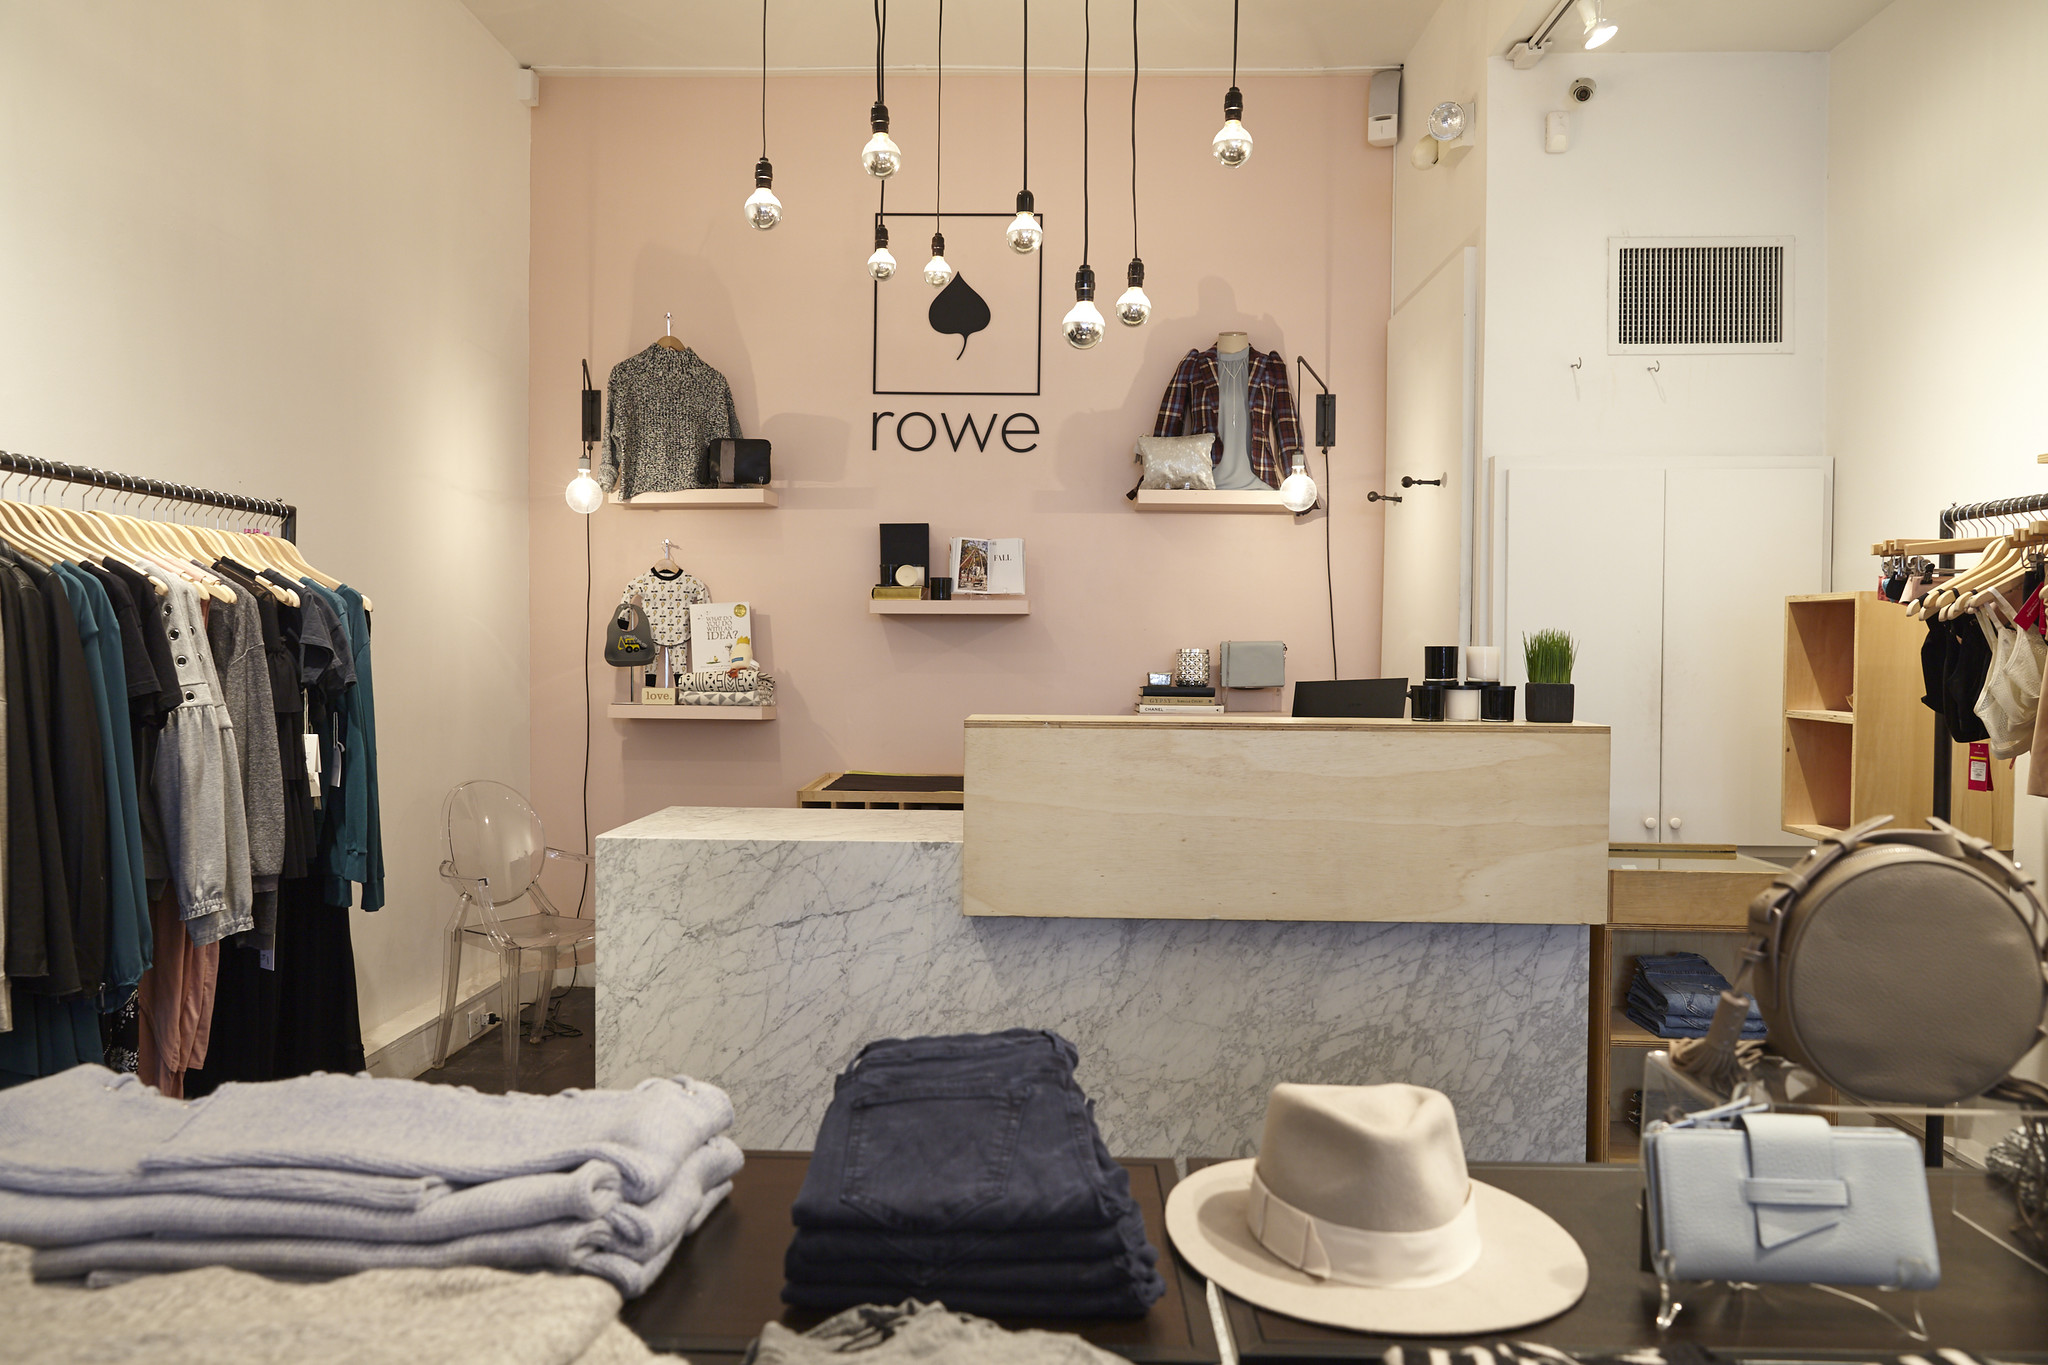 Rowe Is A Womenu0027s Contemporary Clothing Boutique Located In The Short North  Arts District Of Columbus, OH Celebrating Its 11th Year.